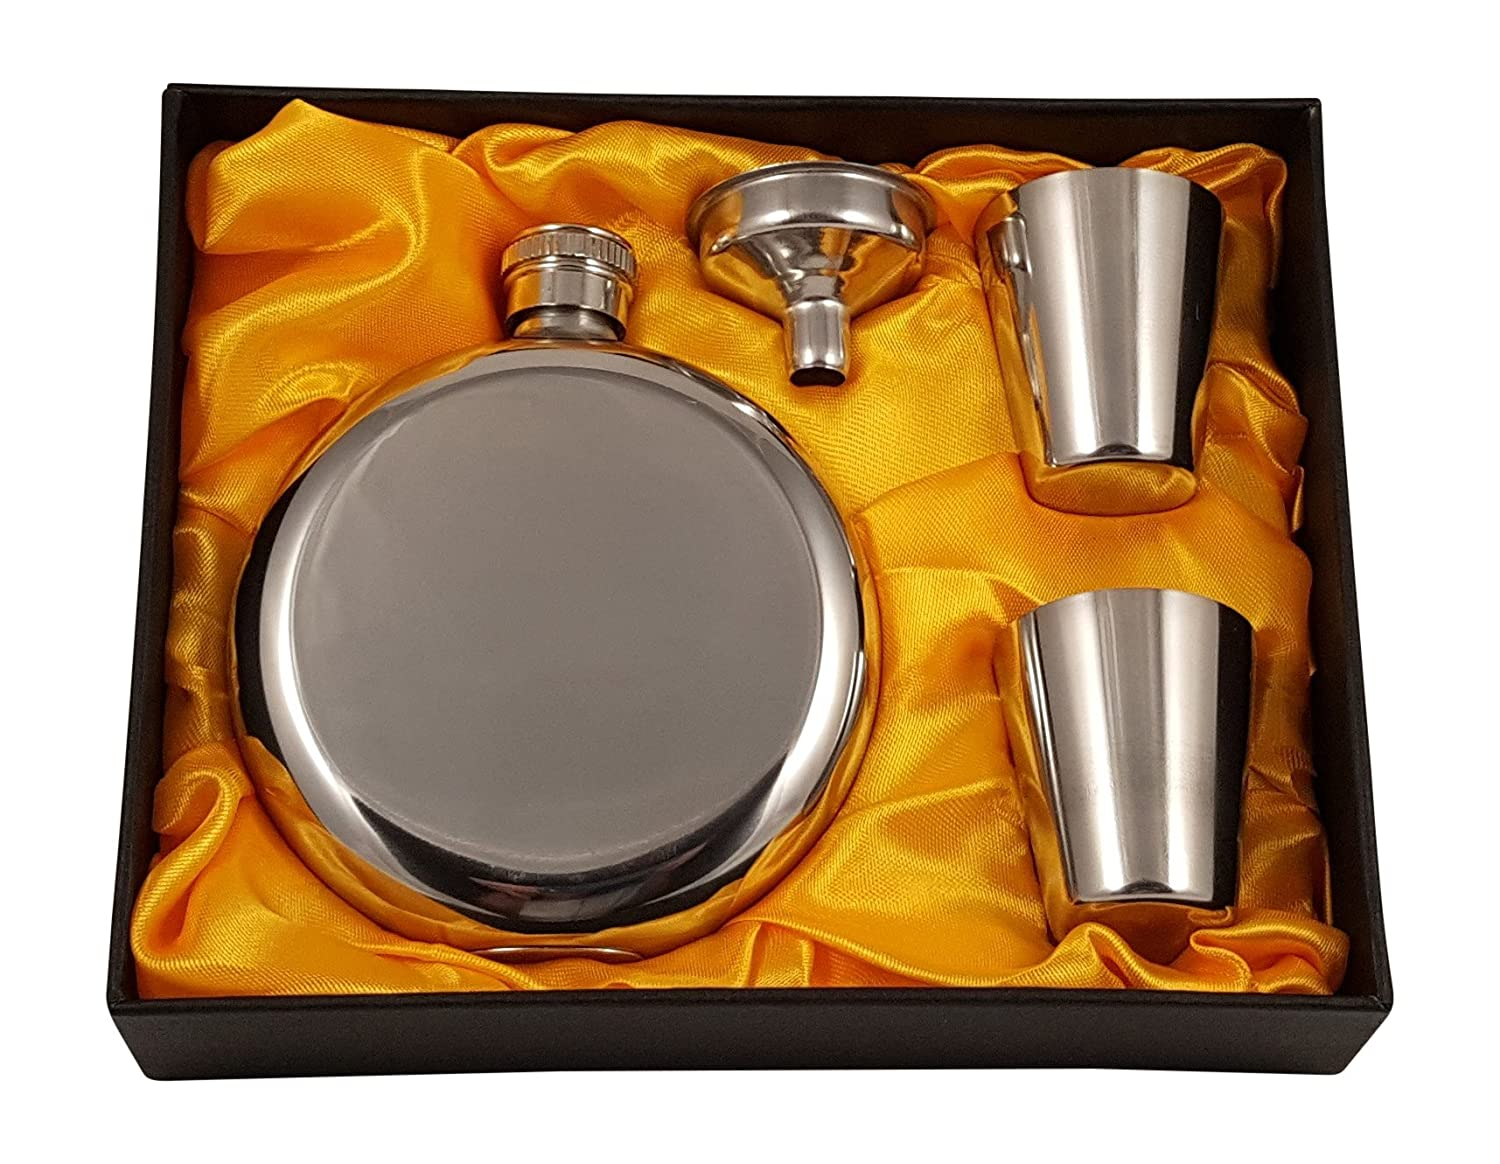 5 oz Round Flask Gift Set with Two Shot Glasses and Funnel in a Black Gift Box